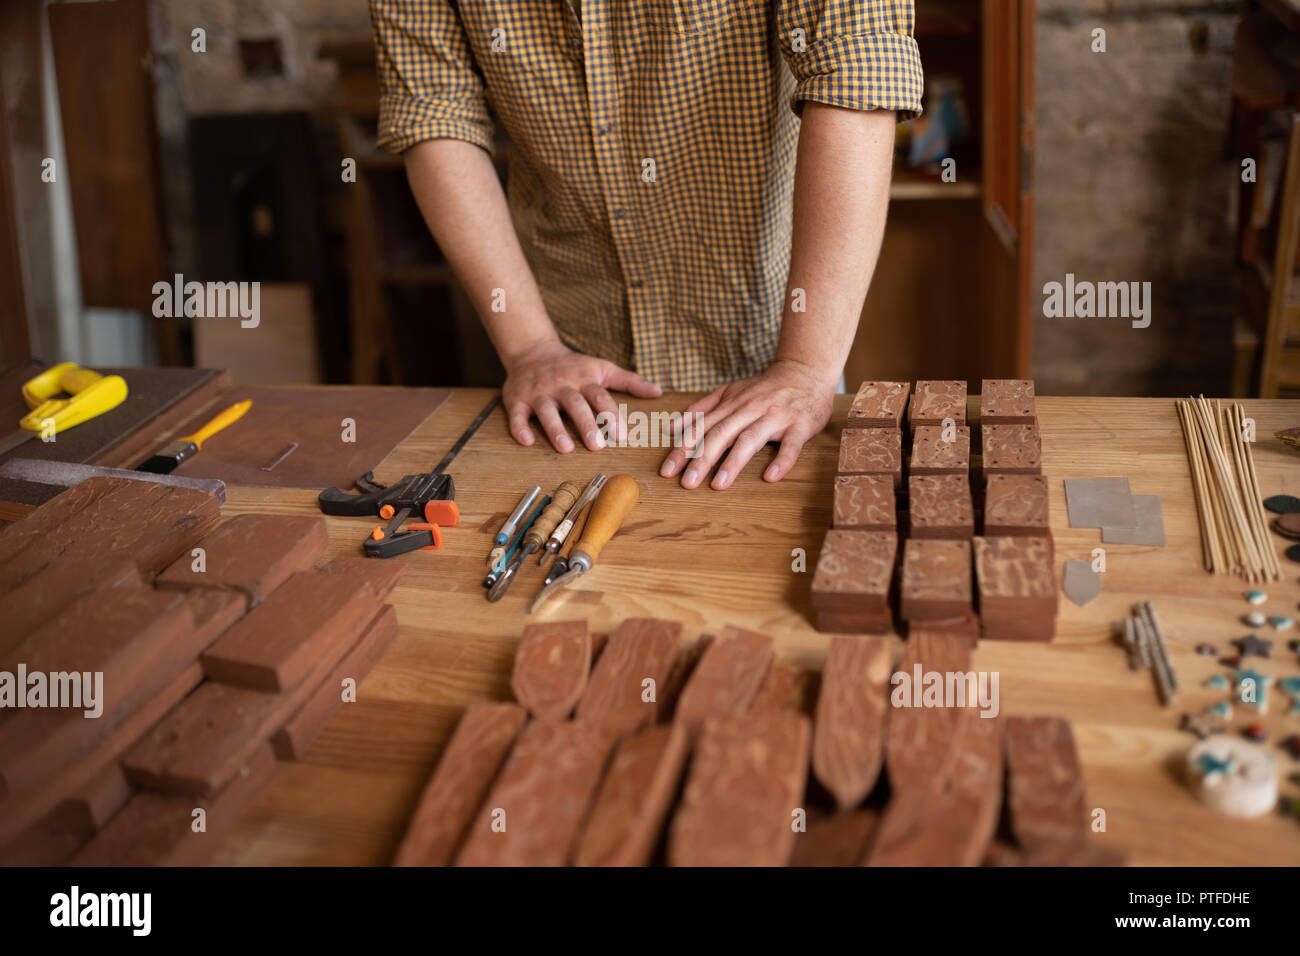 Close-up view of a wood carpenter's hands - Stock Image